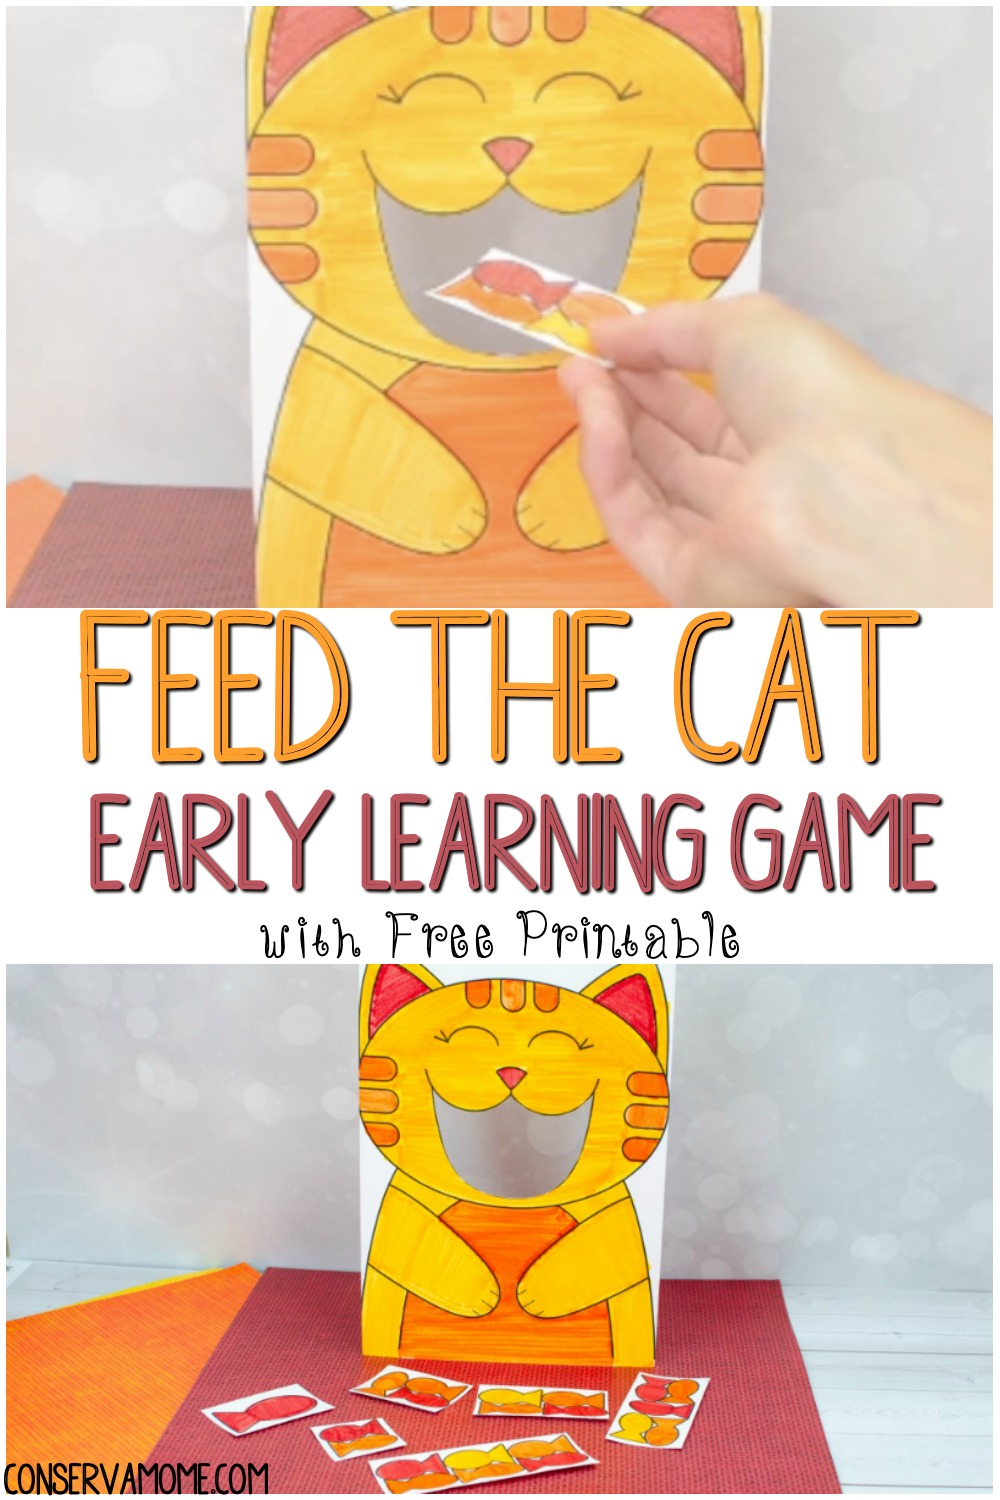 Feed the cat early learning game